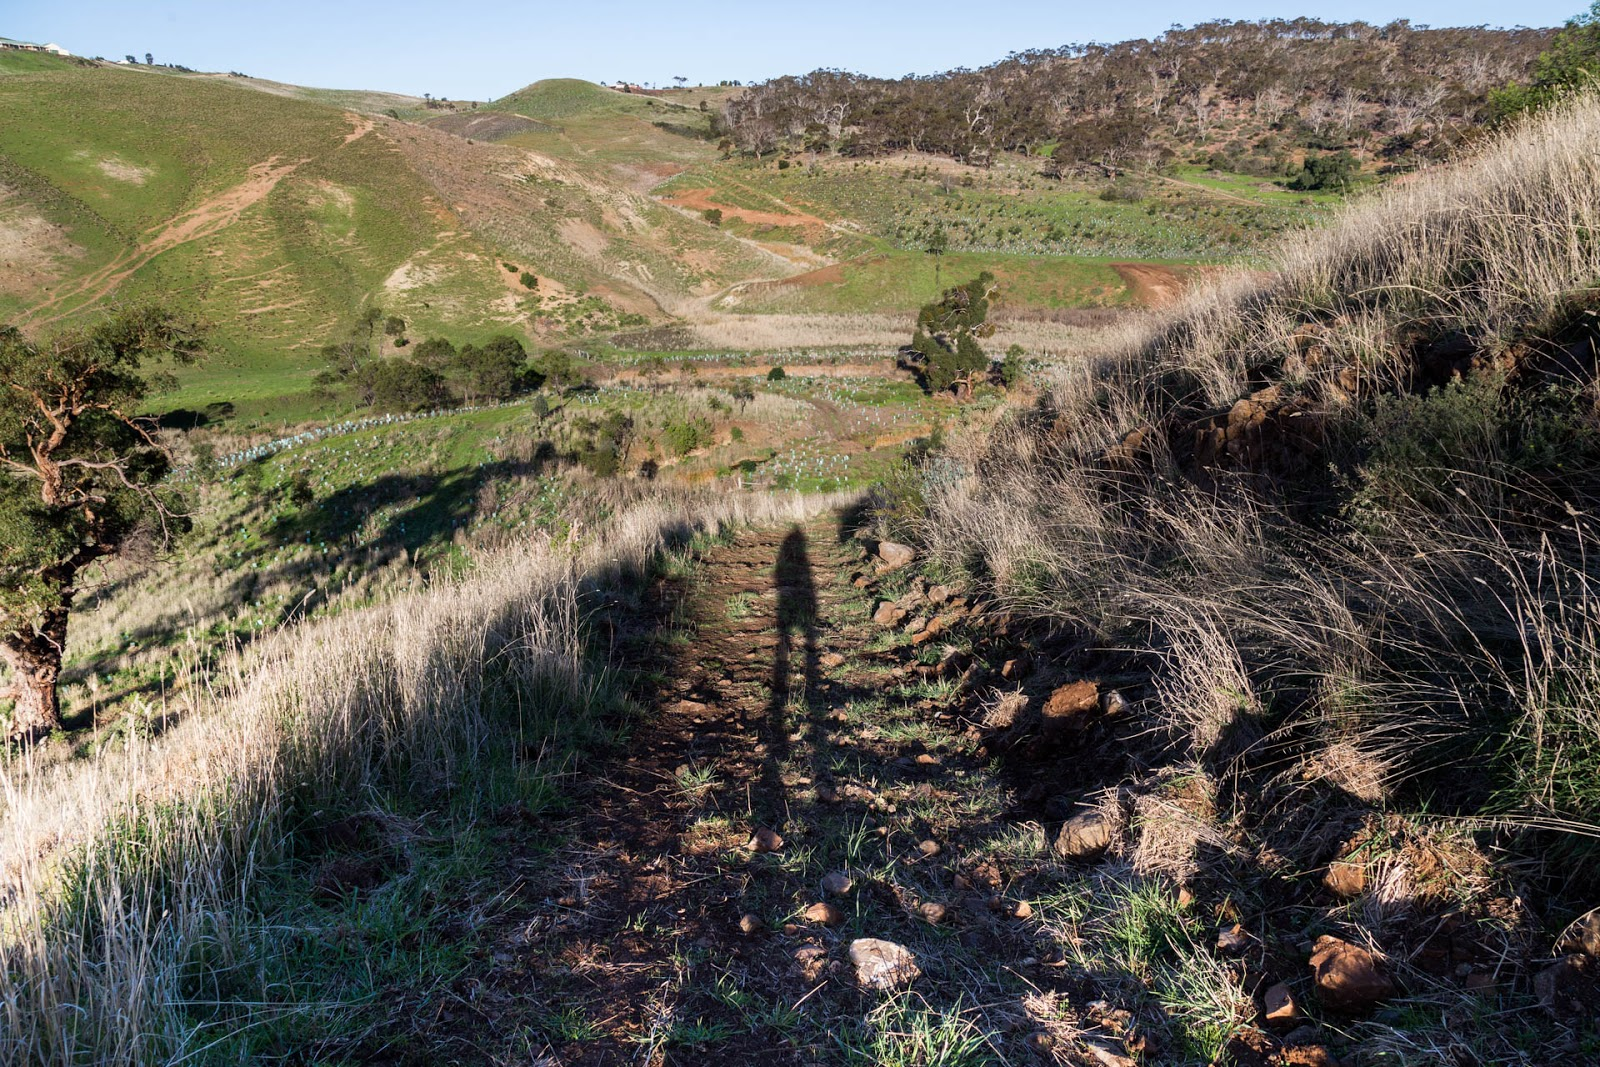 shadow-centenary-track-island-werribee-gorge